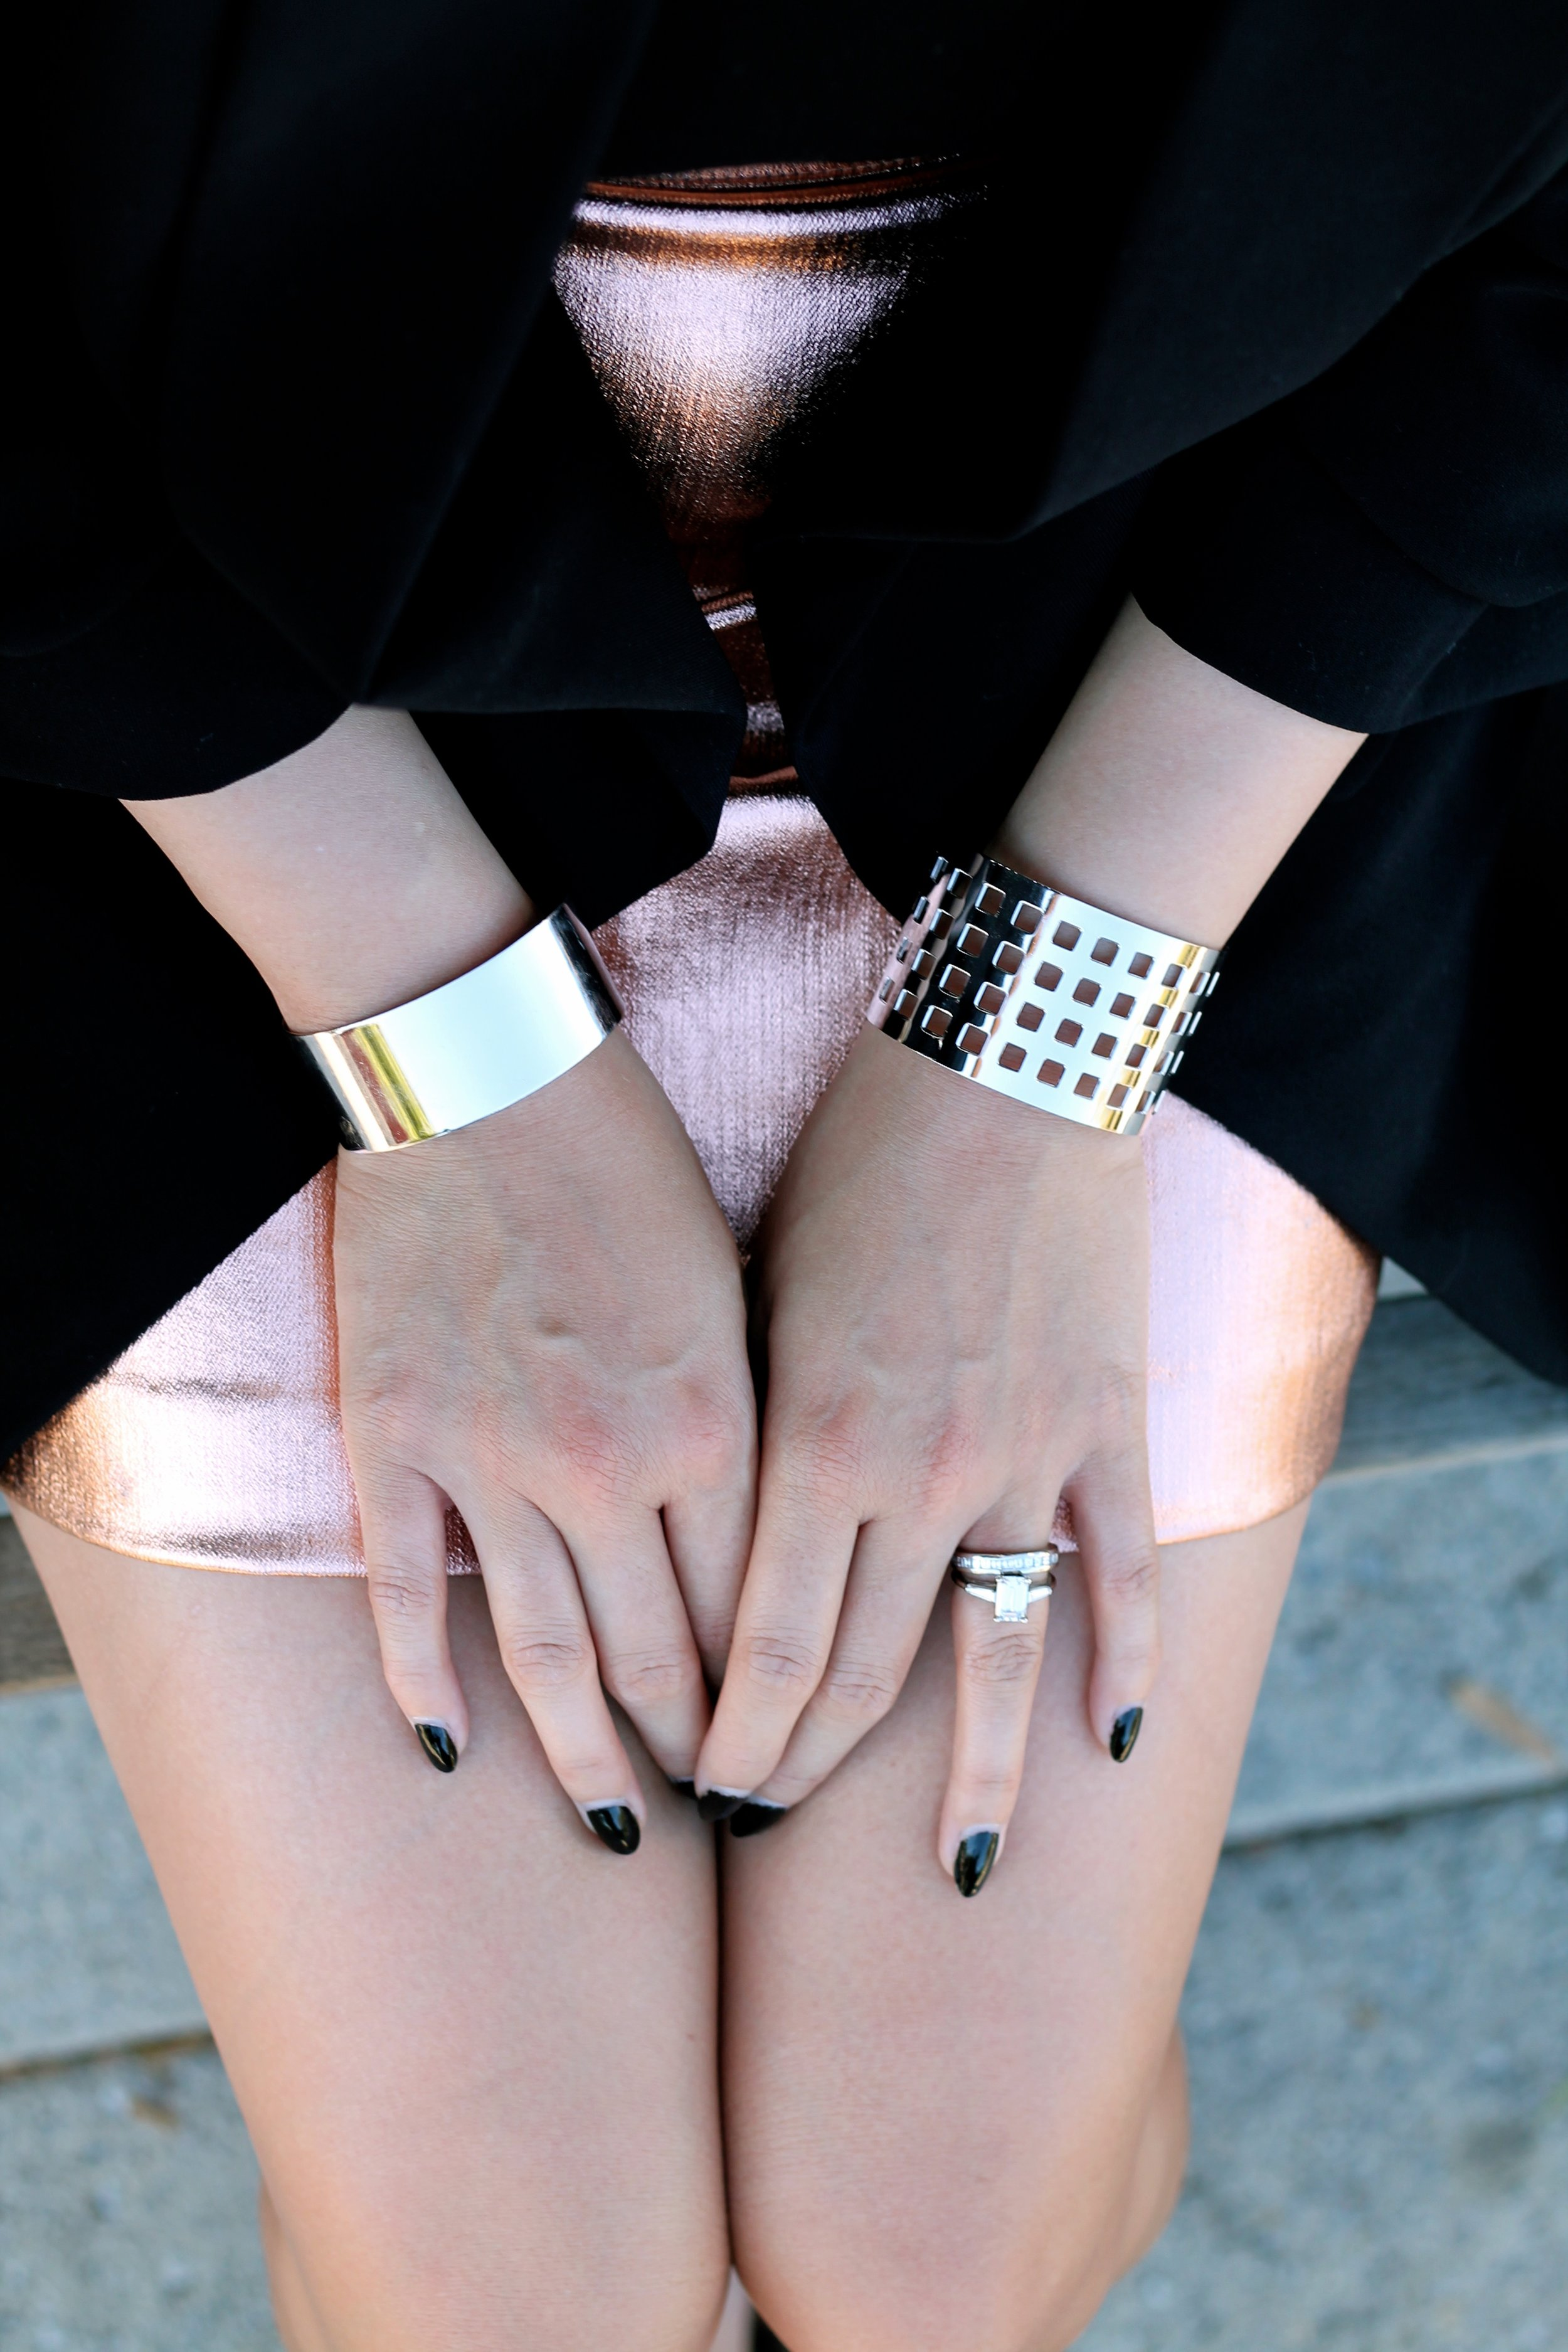 Svelte Metals cuffs and my own rings